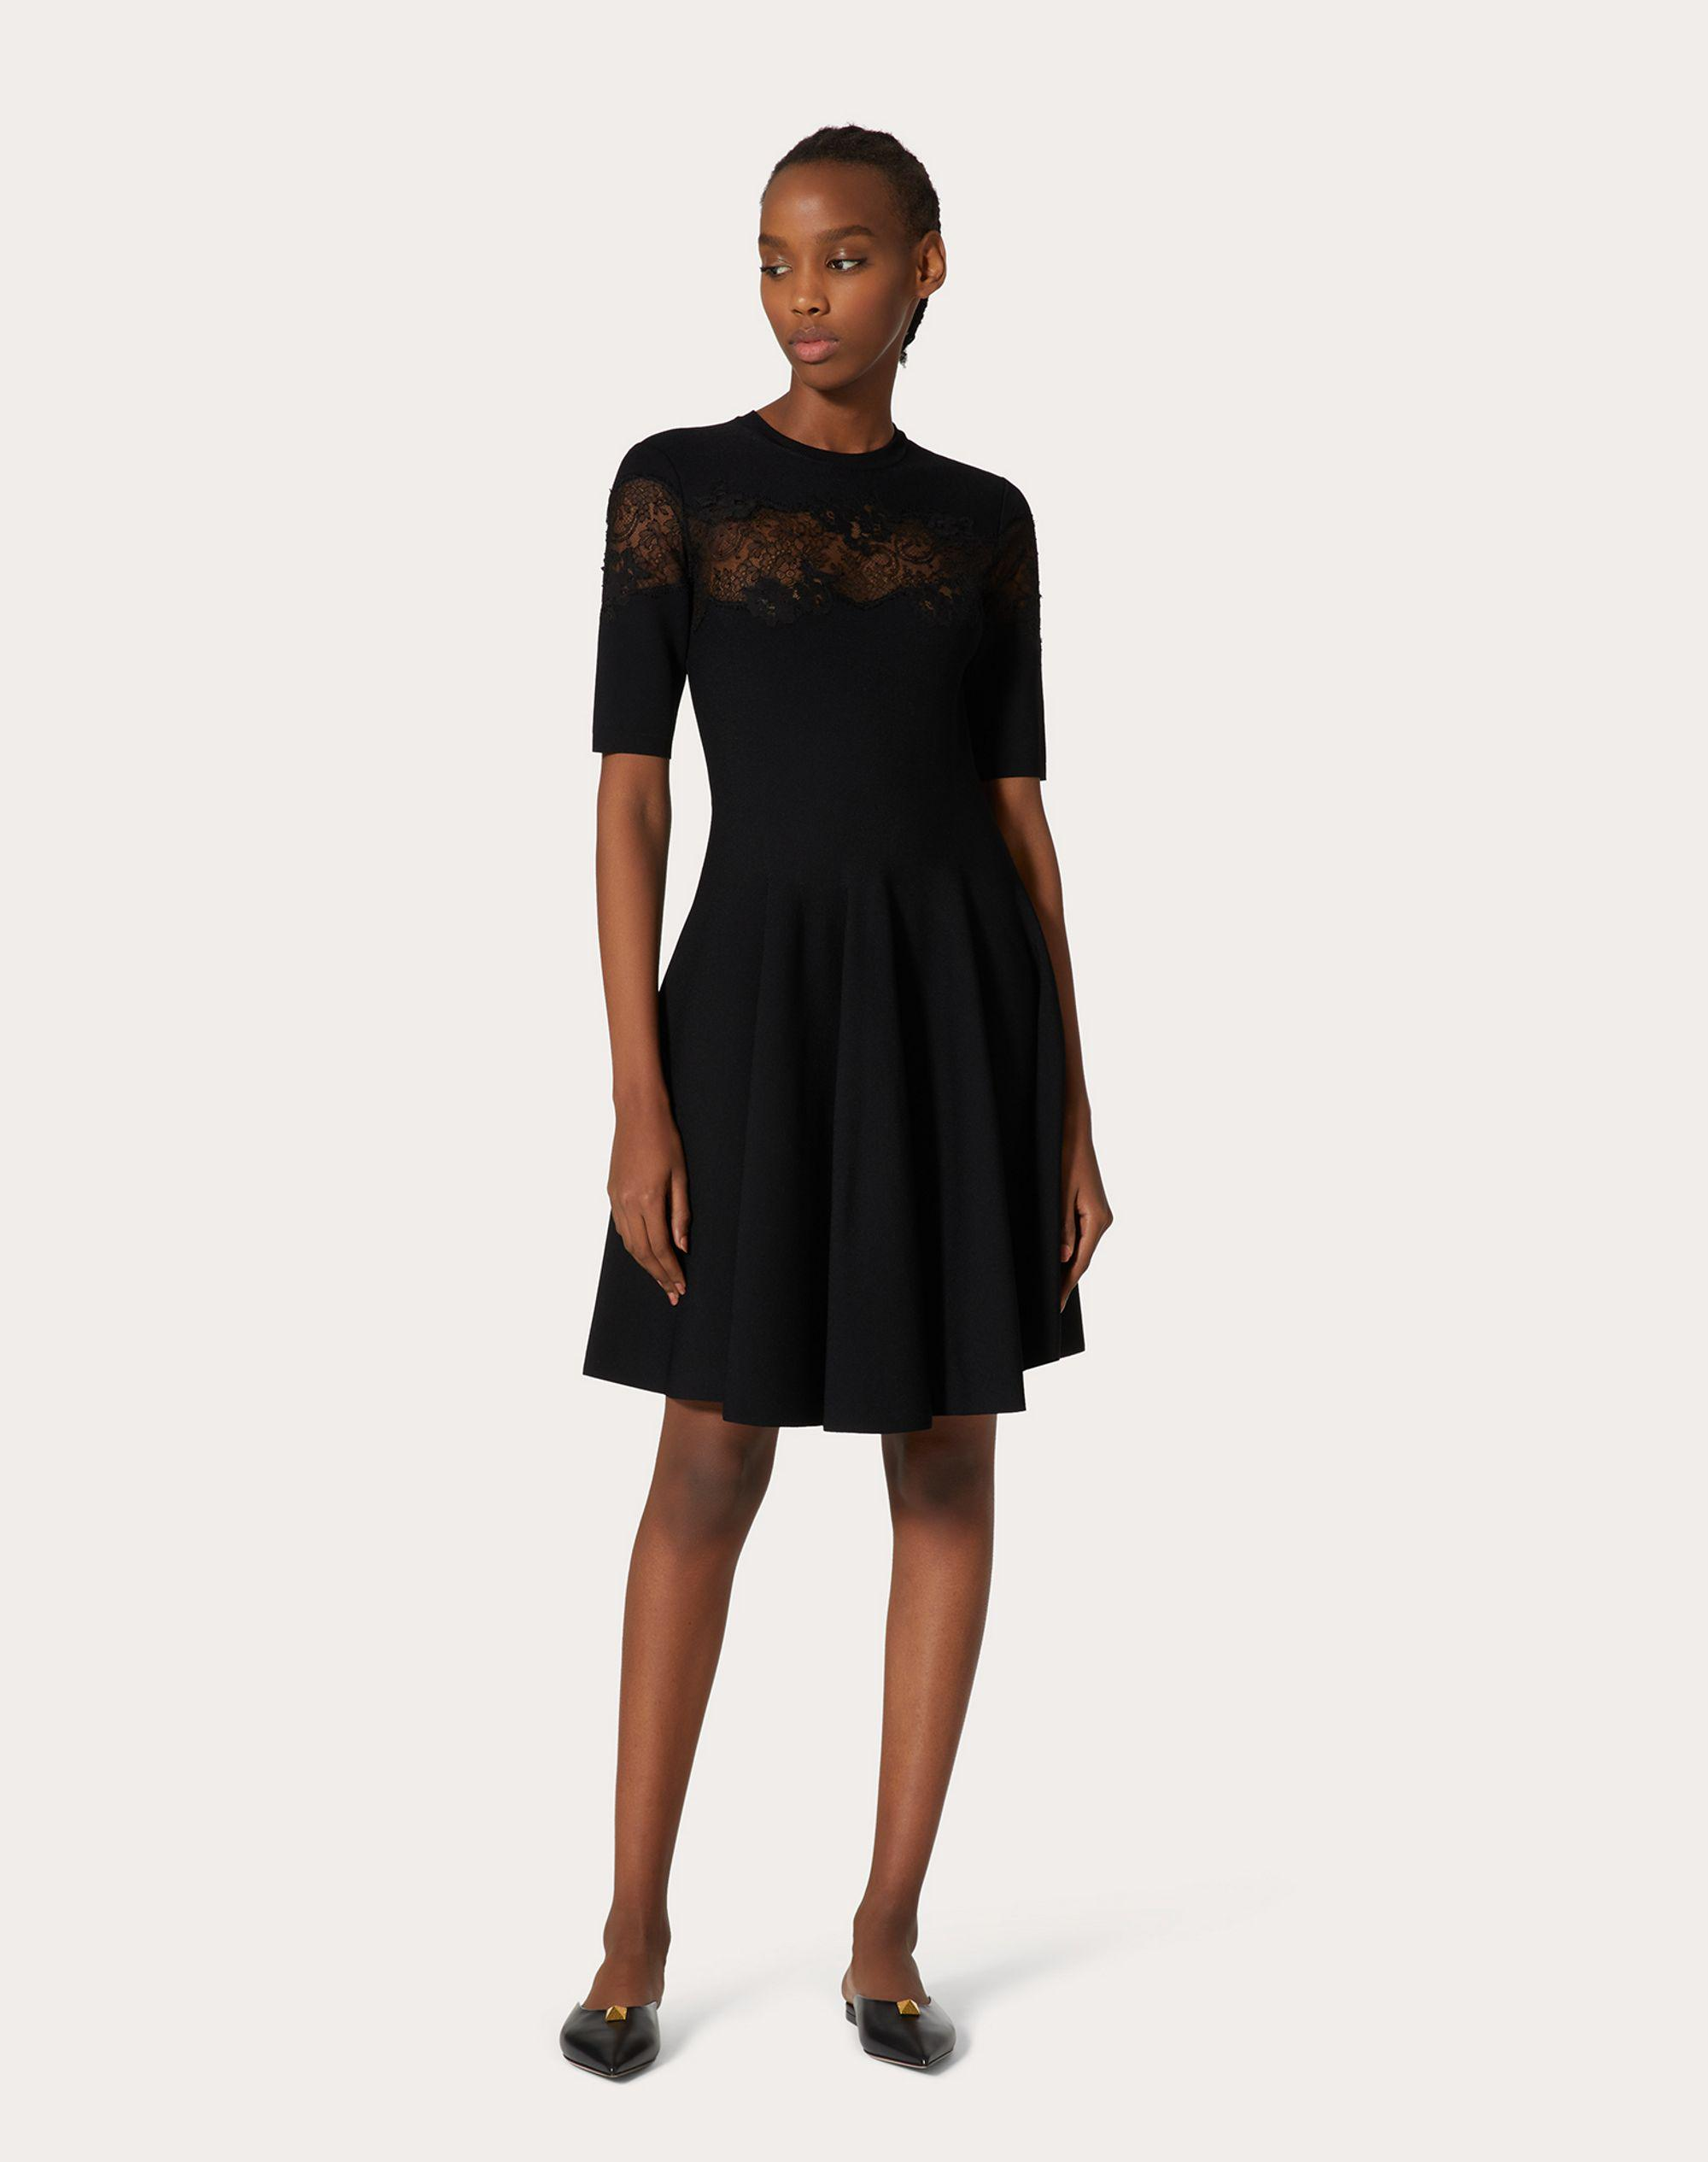 JERSEY DRESS IN STRETCHED VISCOSE AND LACE 1